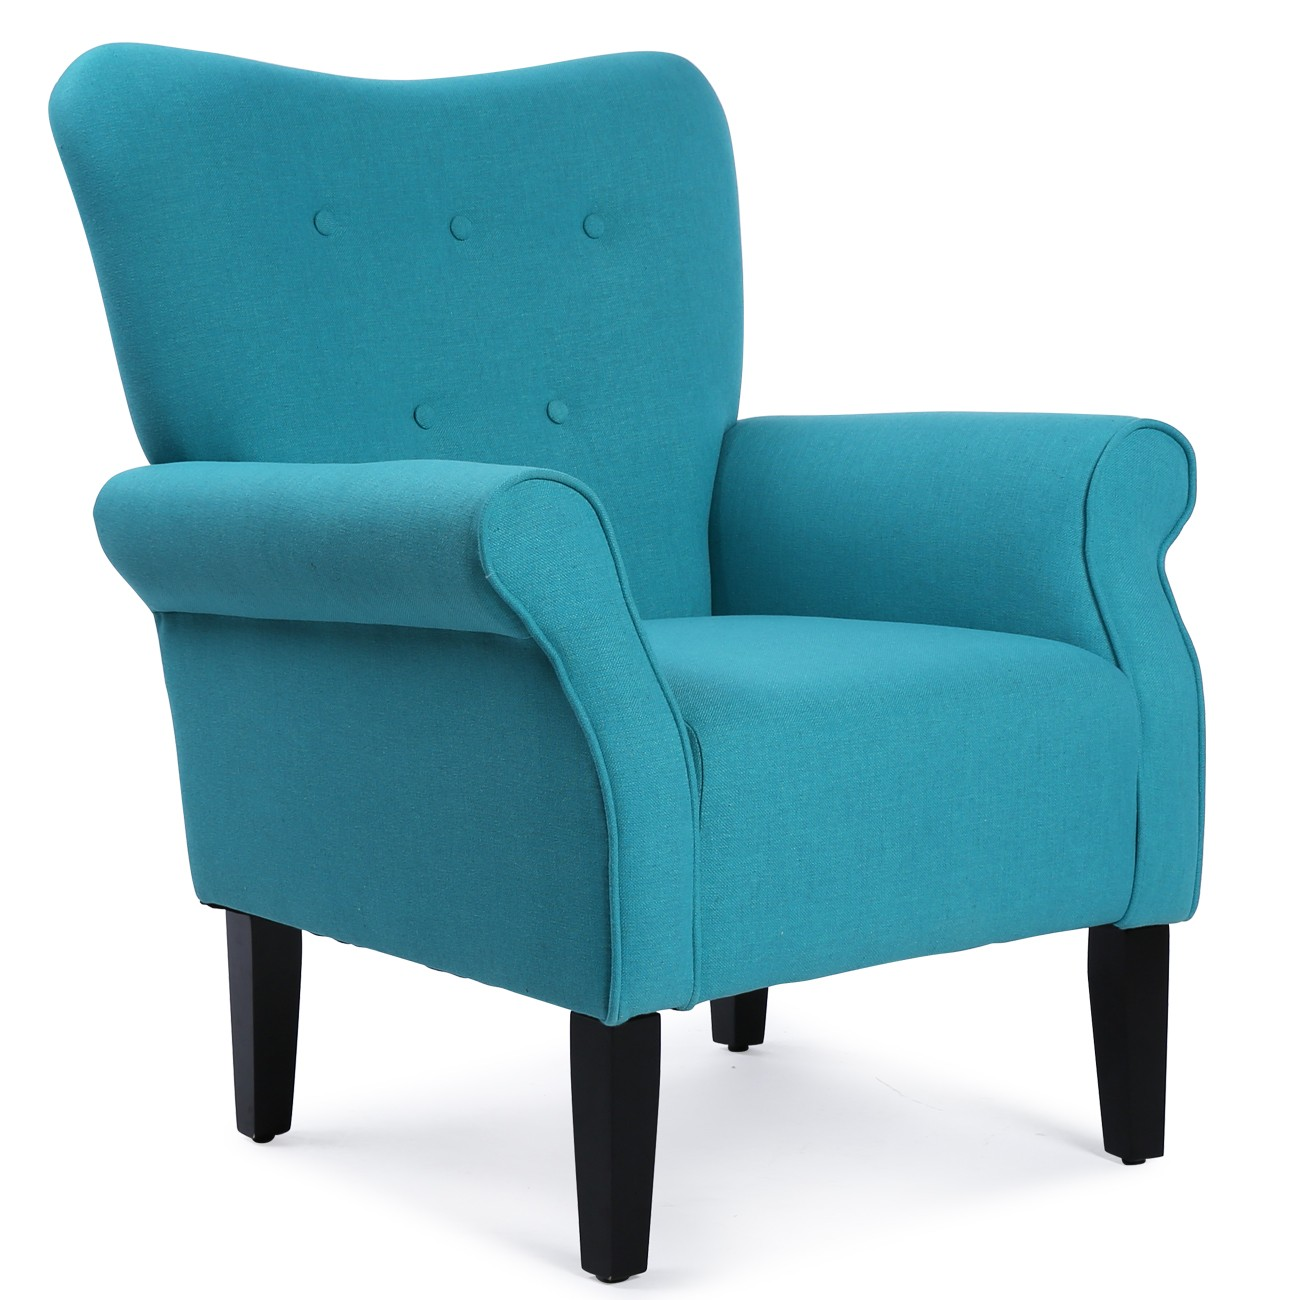 Ebay Accent Chairs: Elegant Design Fabric Club Chair W/ Button Accent Arm Rest